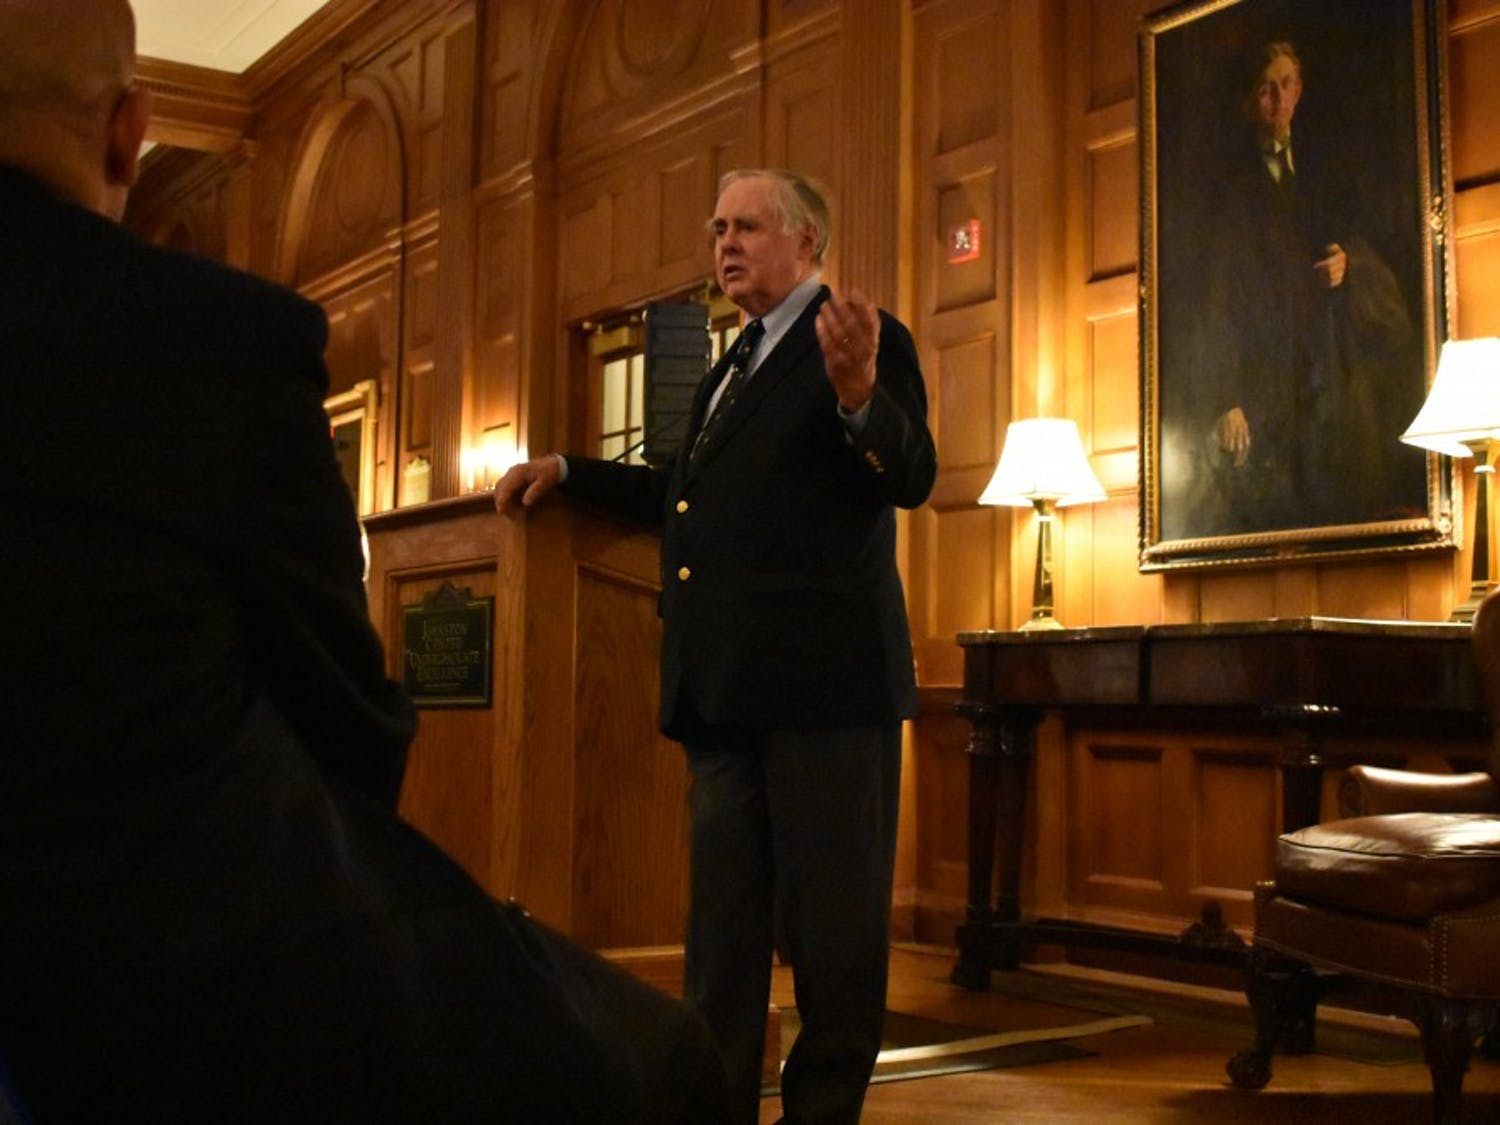 """Anthony Cecil Eden Quainton, a U.S. ambassador, fields questions about American international relations from the audience after his lecture at """"The Year Ahead in Foreign Policy"""" at Graham Memorial Hall on Tuesday, Nov. 27, 2018."""